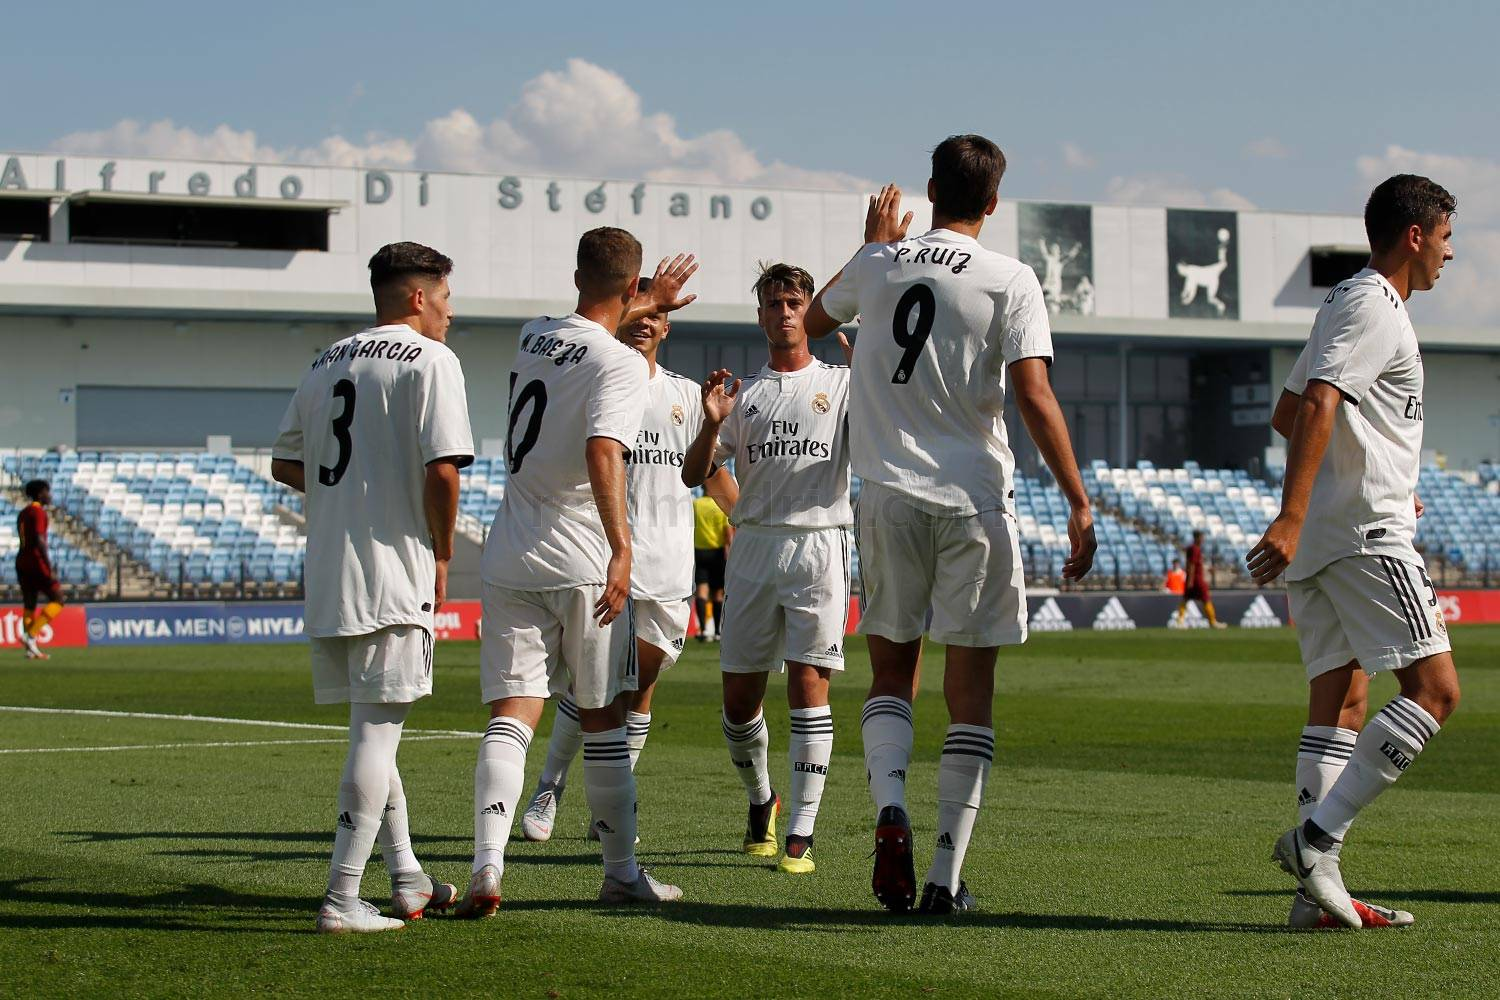 Real Madrid - Juvenil A - Roma - 19-09-2018